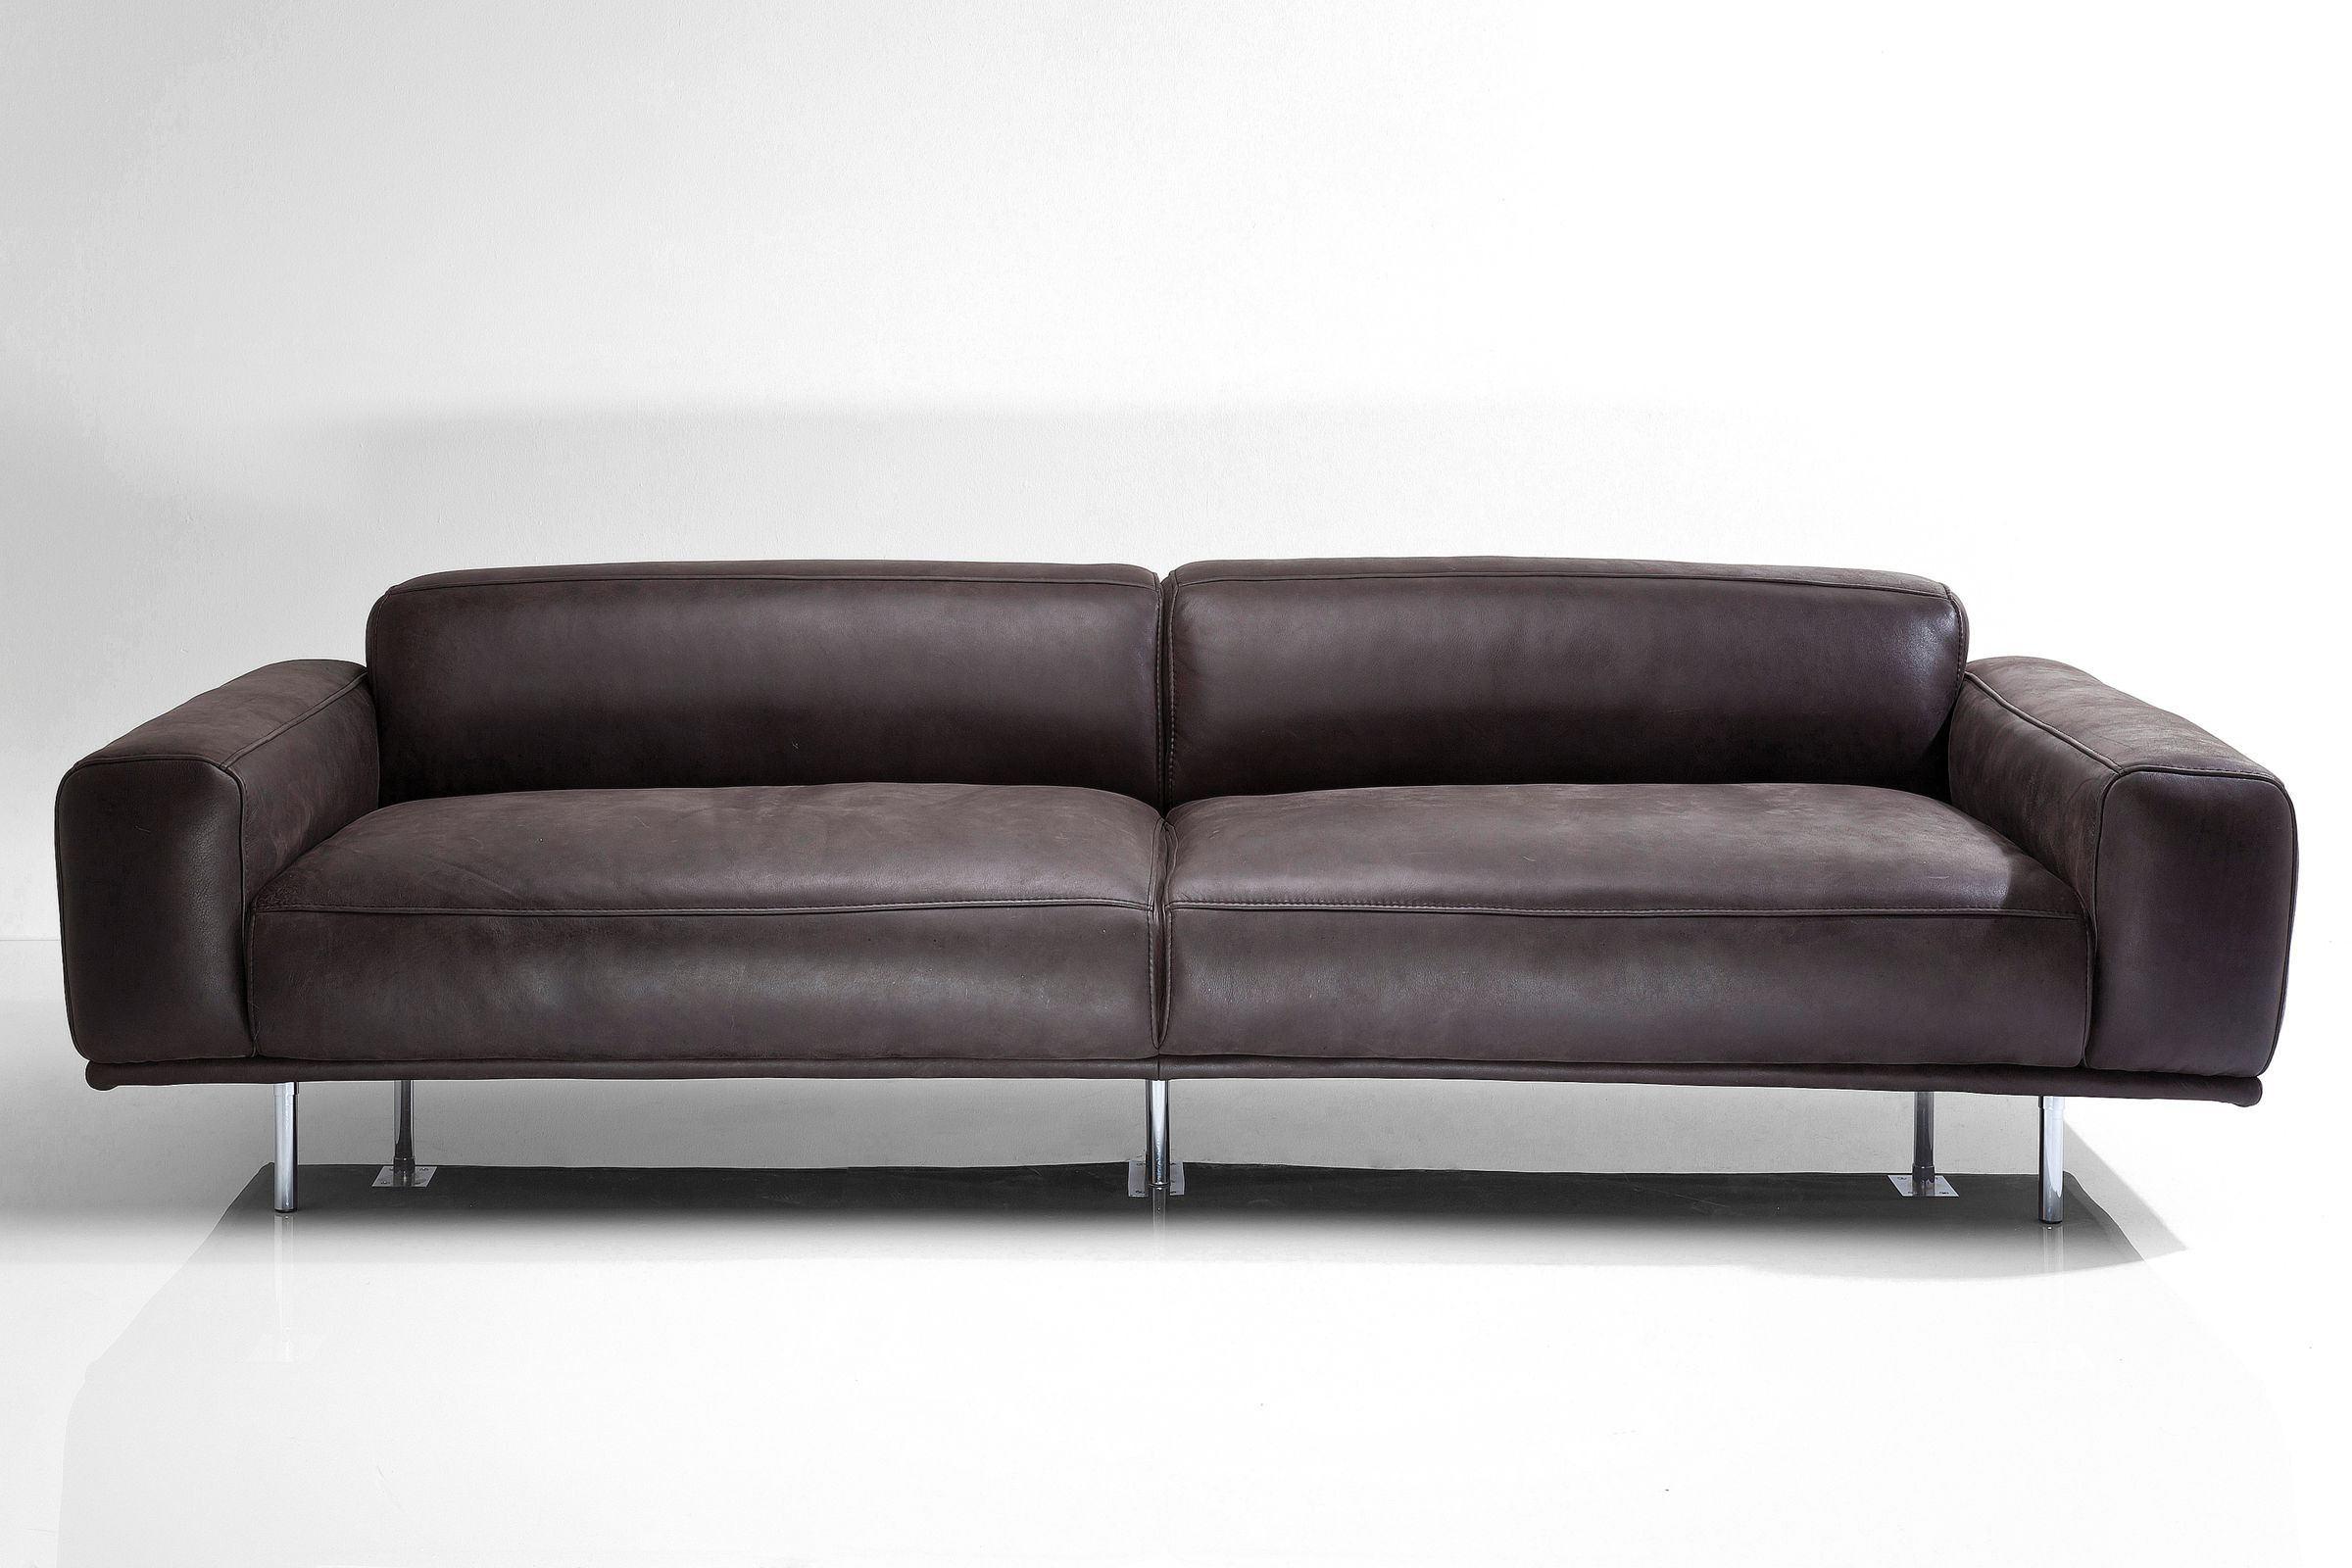 Sofa lorenzo 245cm leder anthrazit by kare design studio for Prostoria divani